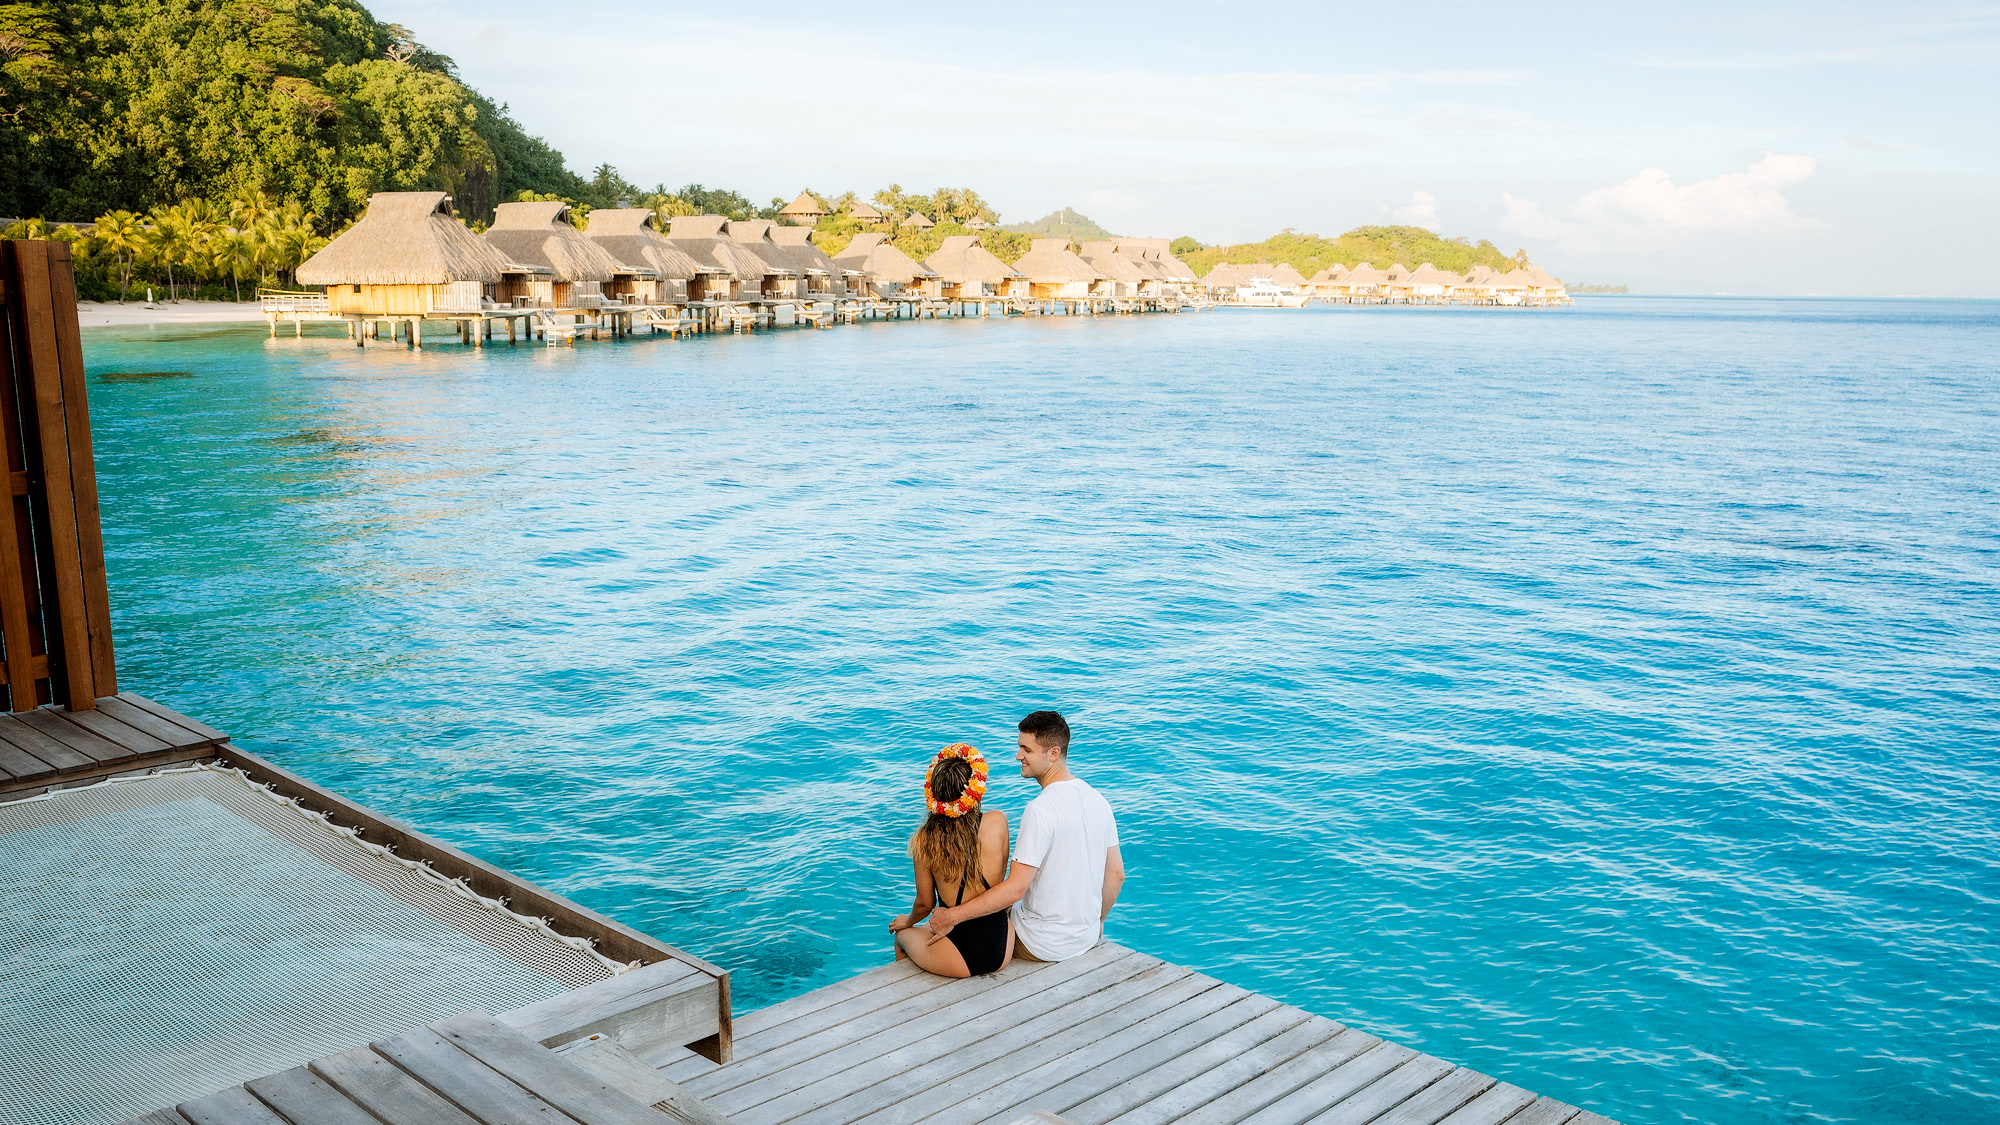 The Ultimate Romantic Couples Getaway to Bora Bora, French Polynesia